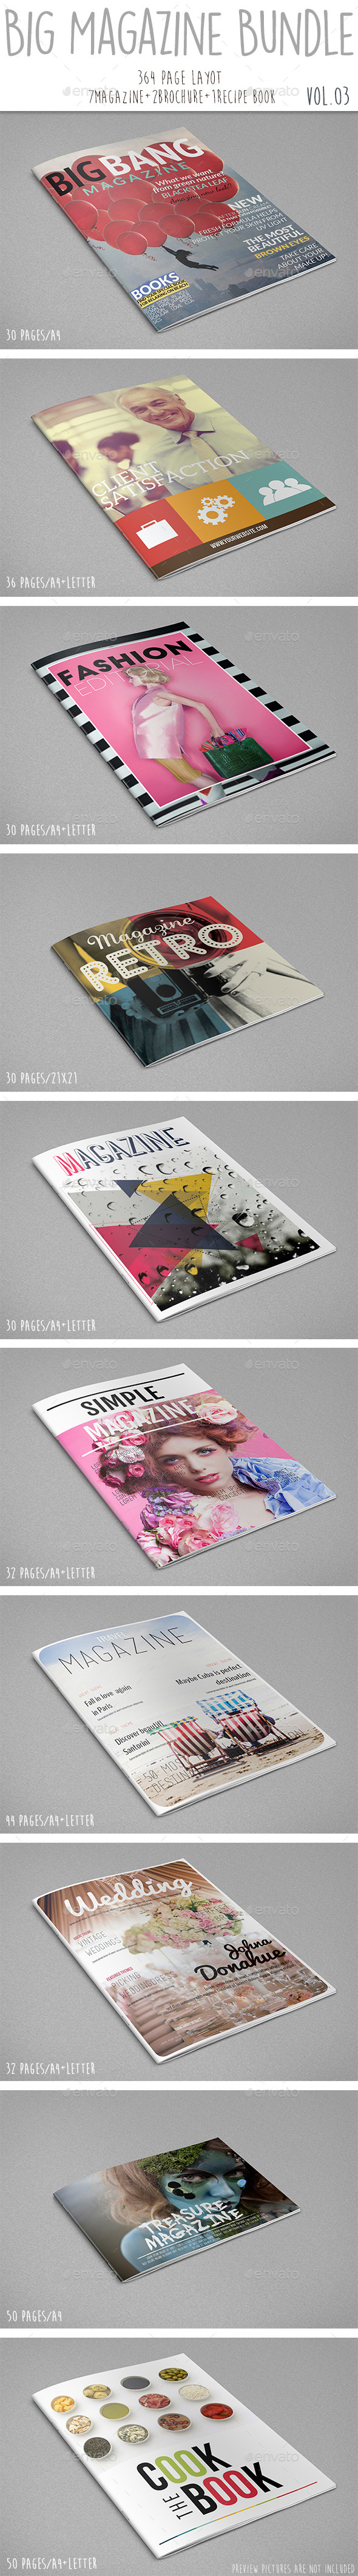 Big Magazine Bundle Vol.03 - Print Templates